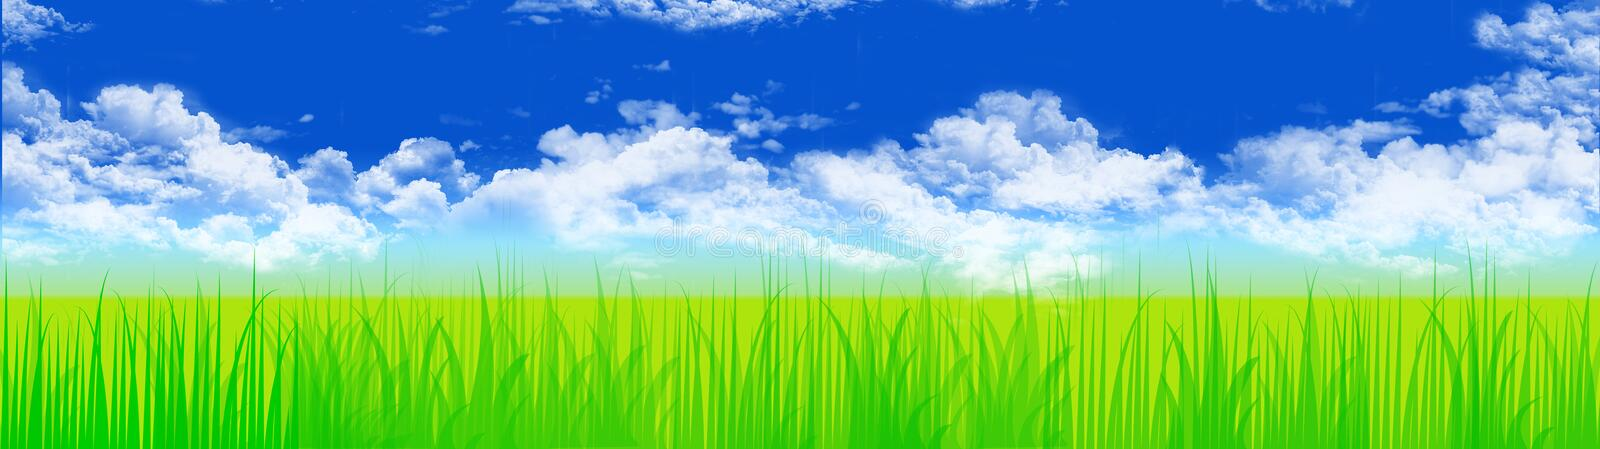 Download Grass and sky stock illustration. Illustration of header - 5026312